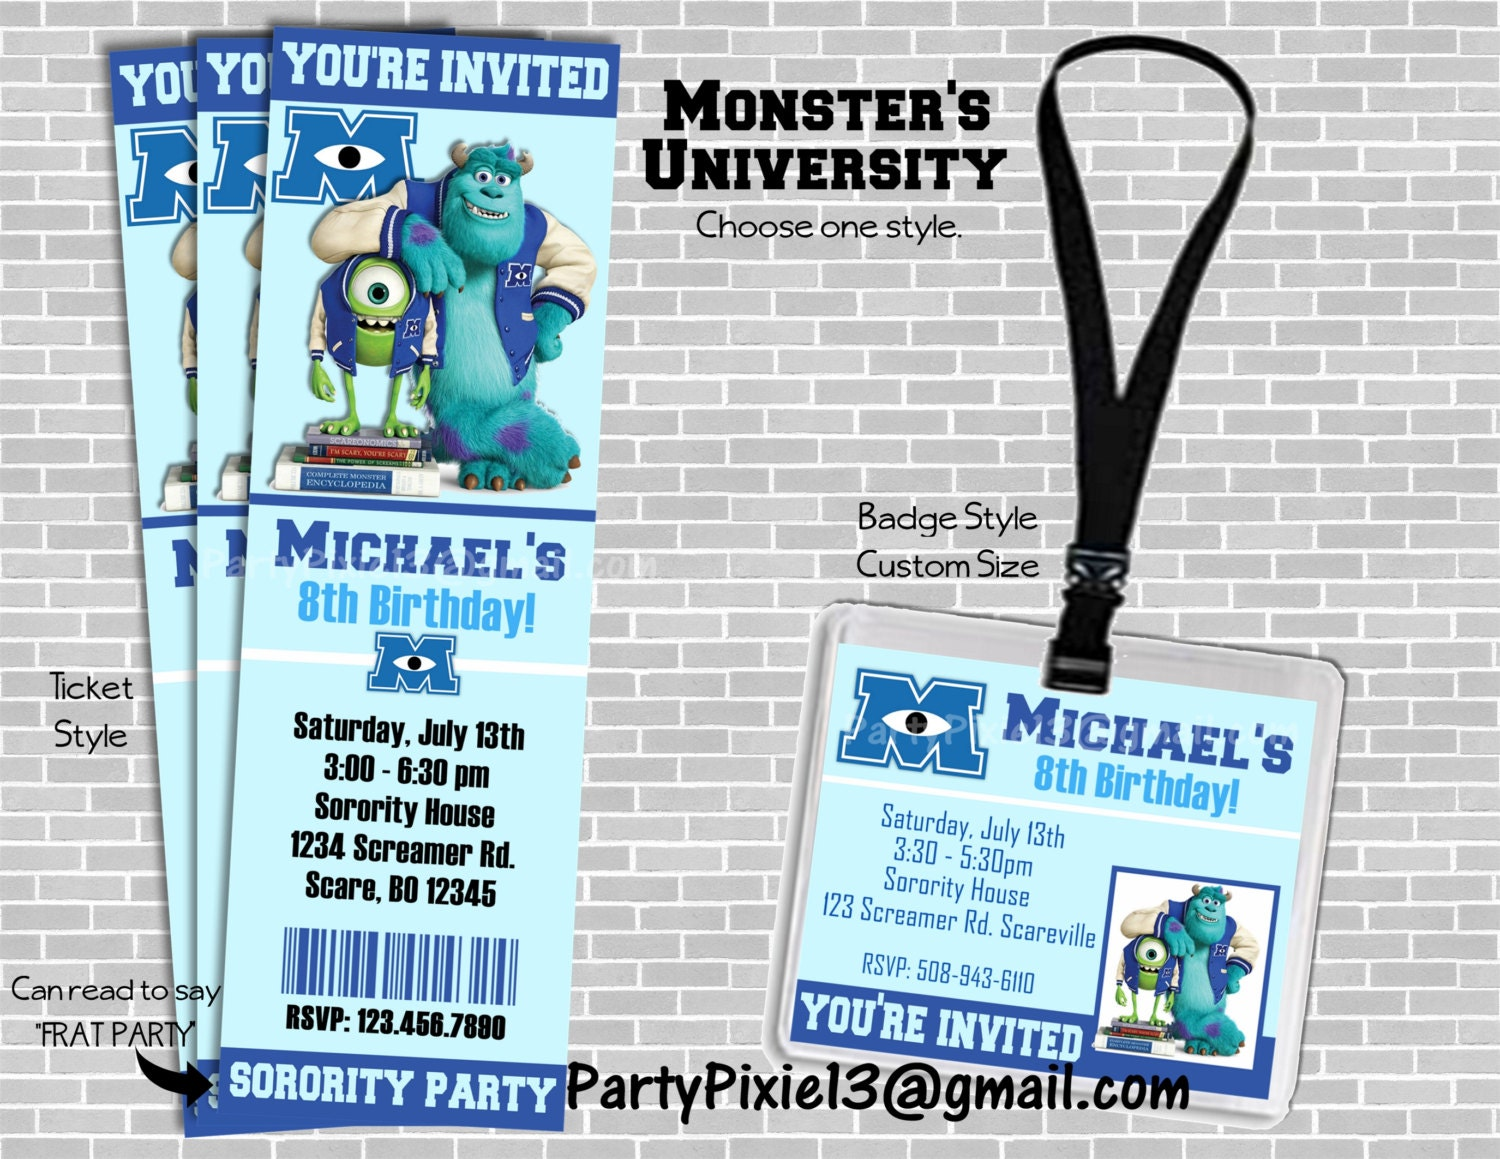 Monsters University Party Invitation Ticket Style or Badge